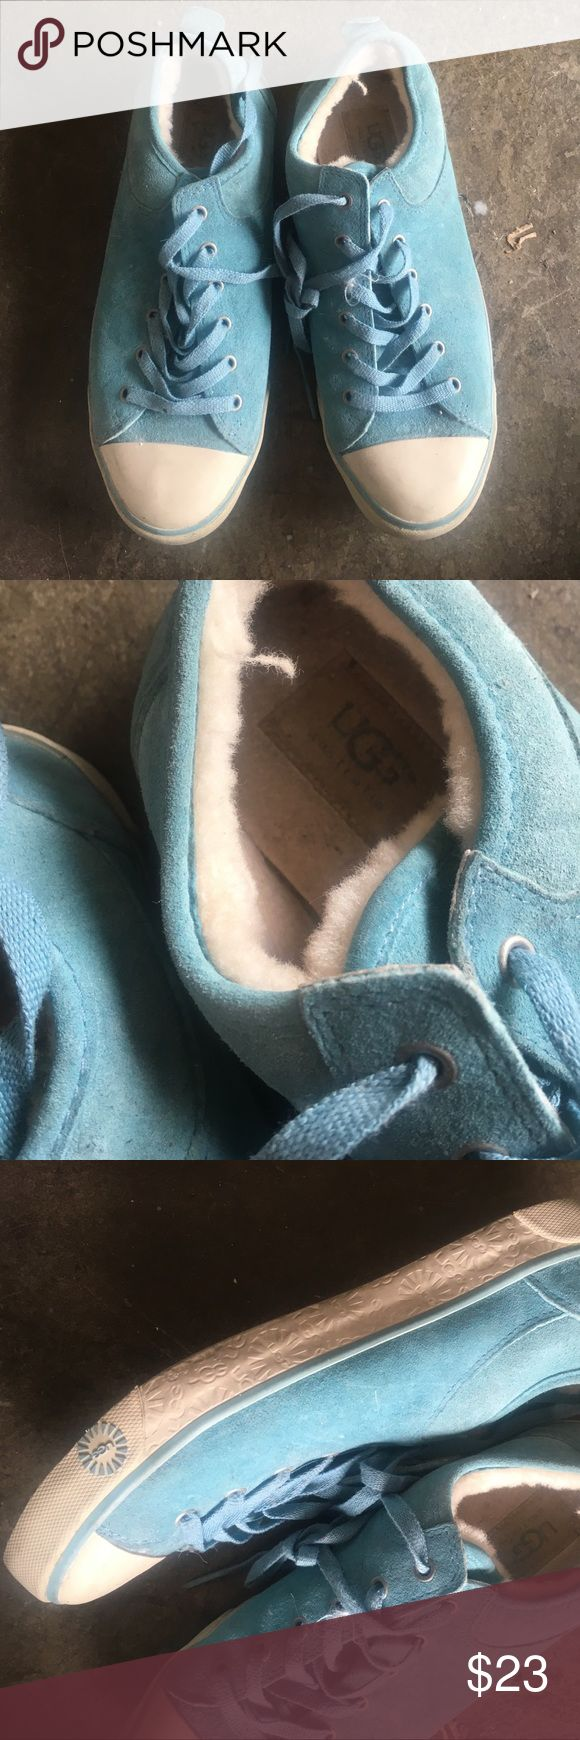 AUTHENTIC UGG sneakers These blue authentic UGG sneakers are super cozy and unique! They feature a sheep fur lining and beautiful blue hue. They are mildly scuffed/dirty around the white parts of the shoes, but it is not severe and can be cleaned. UGG Shoes Sneakers